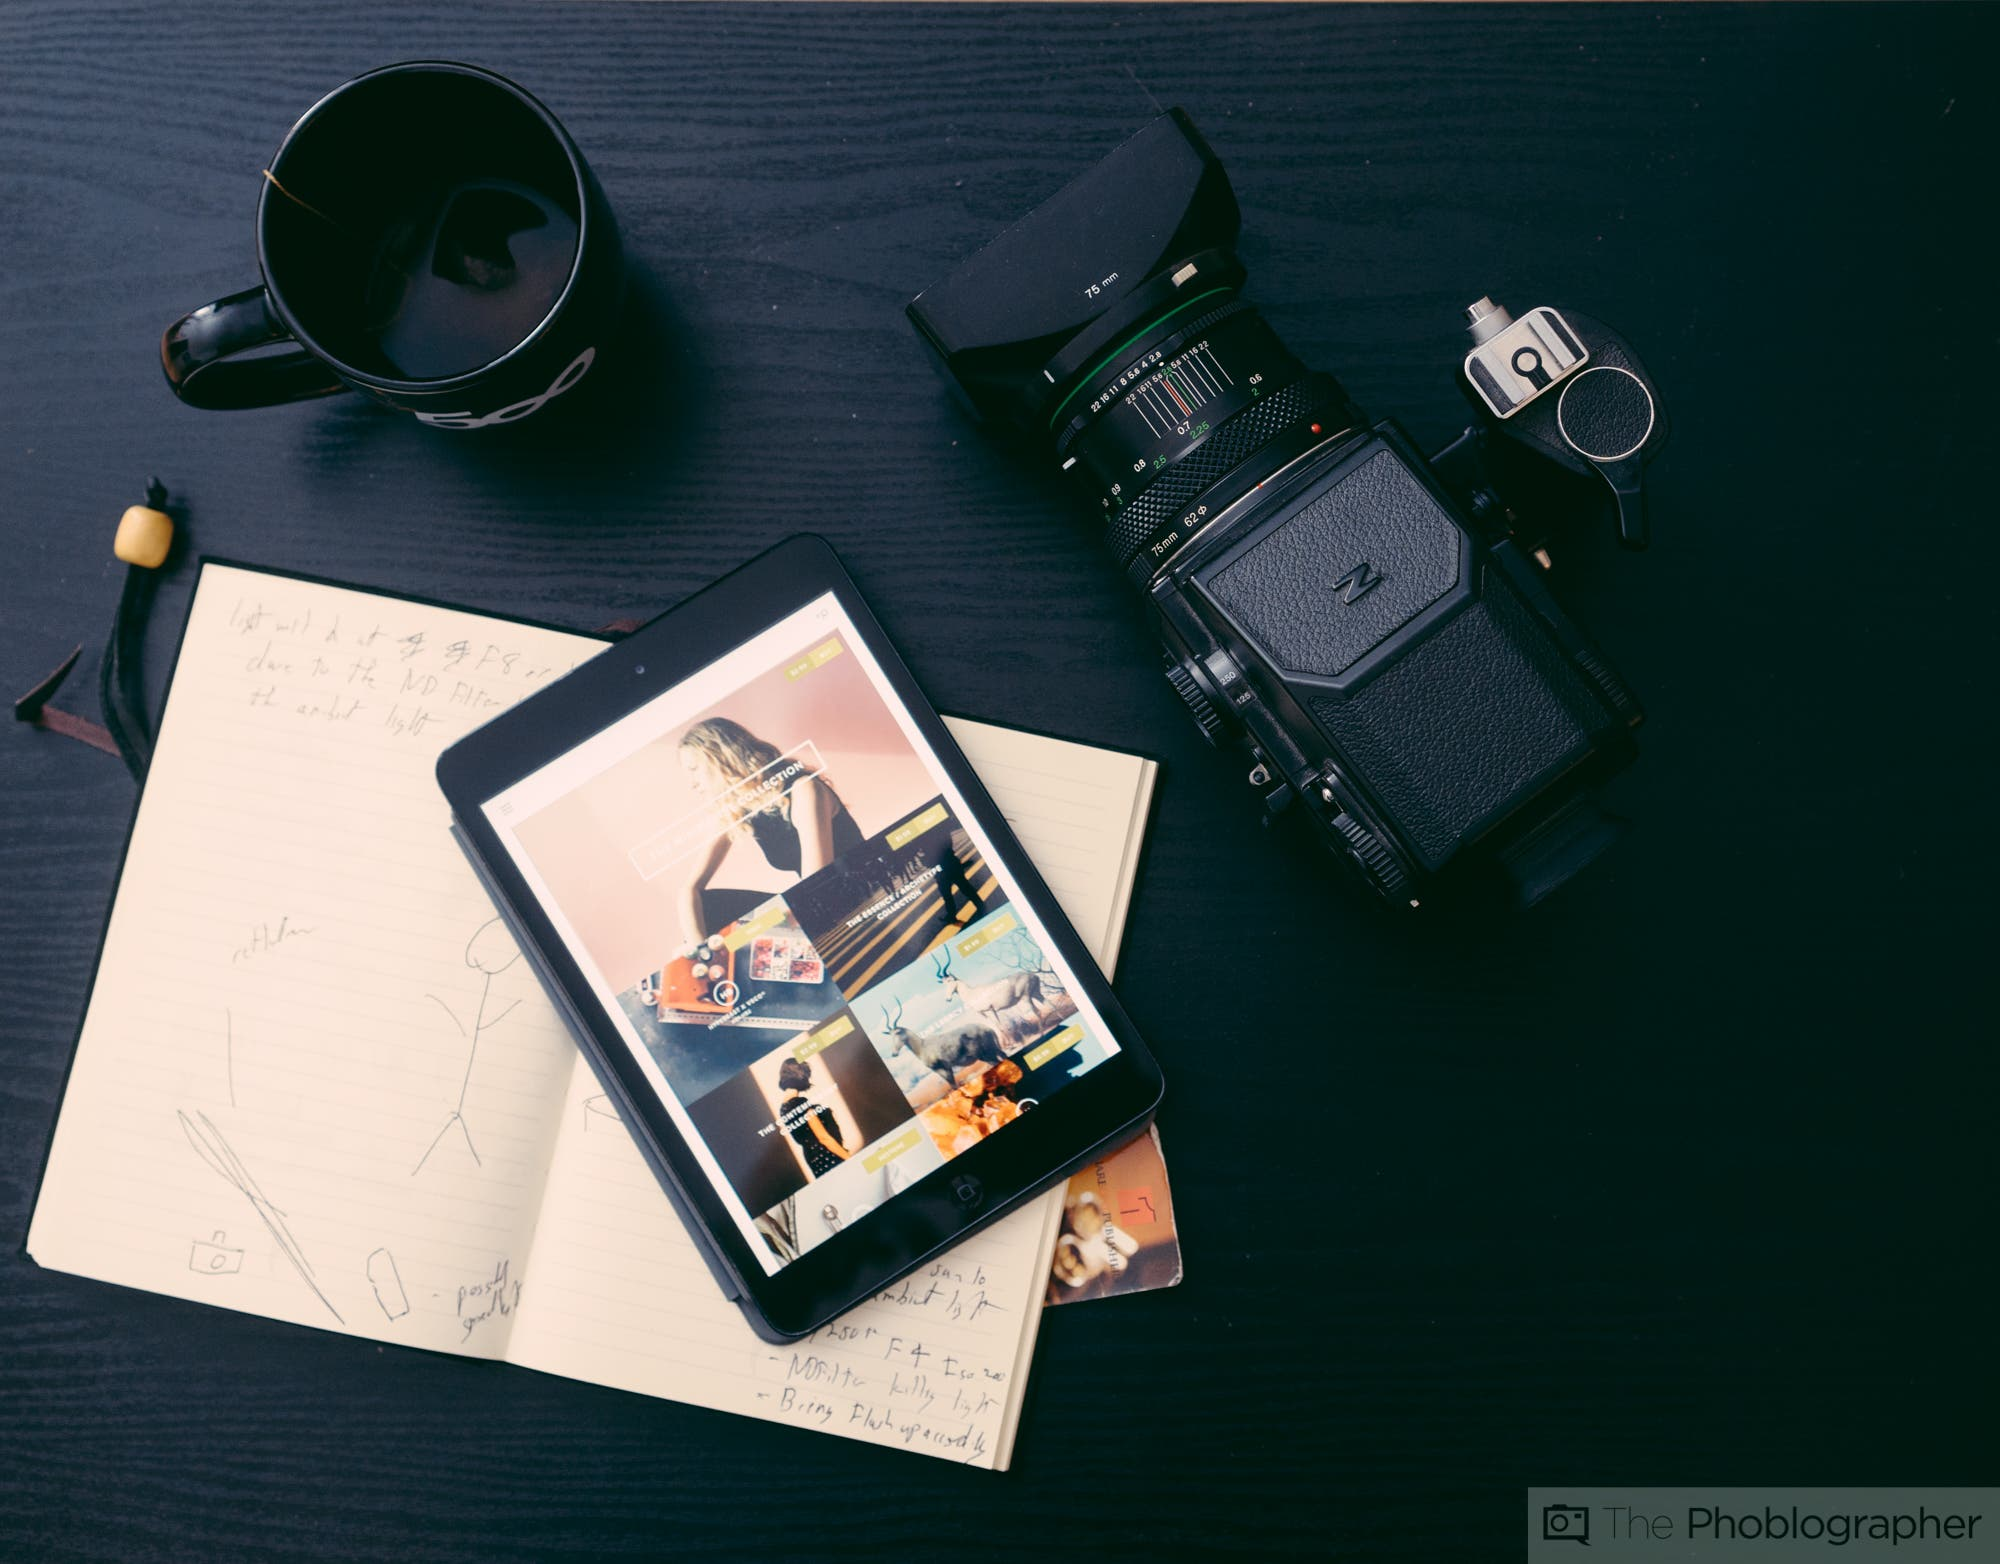 Six Photo Communities For the Serious Photographer